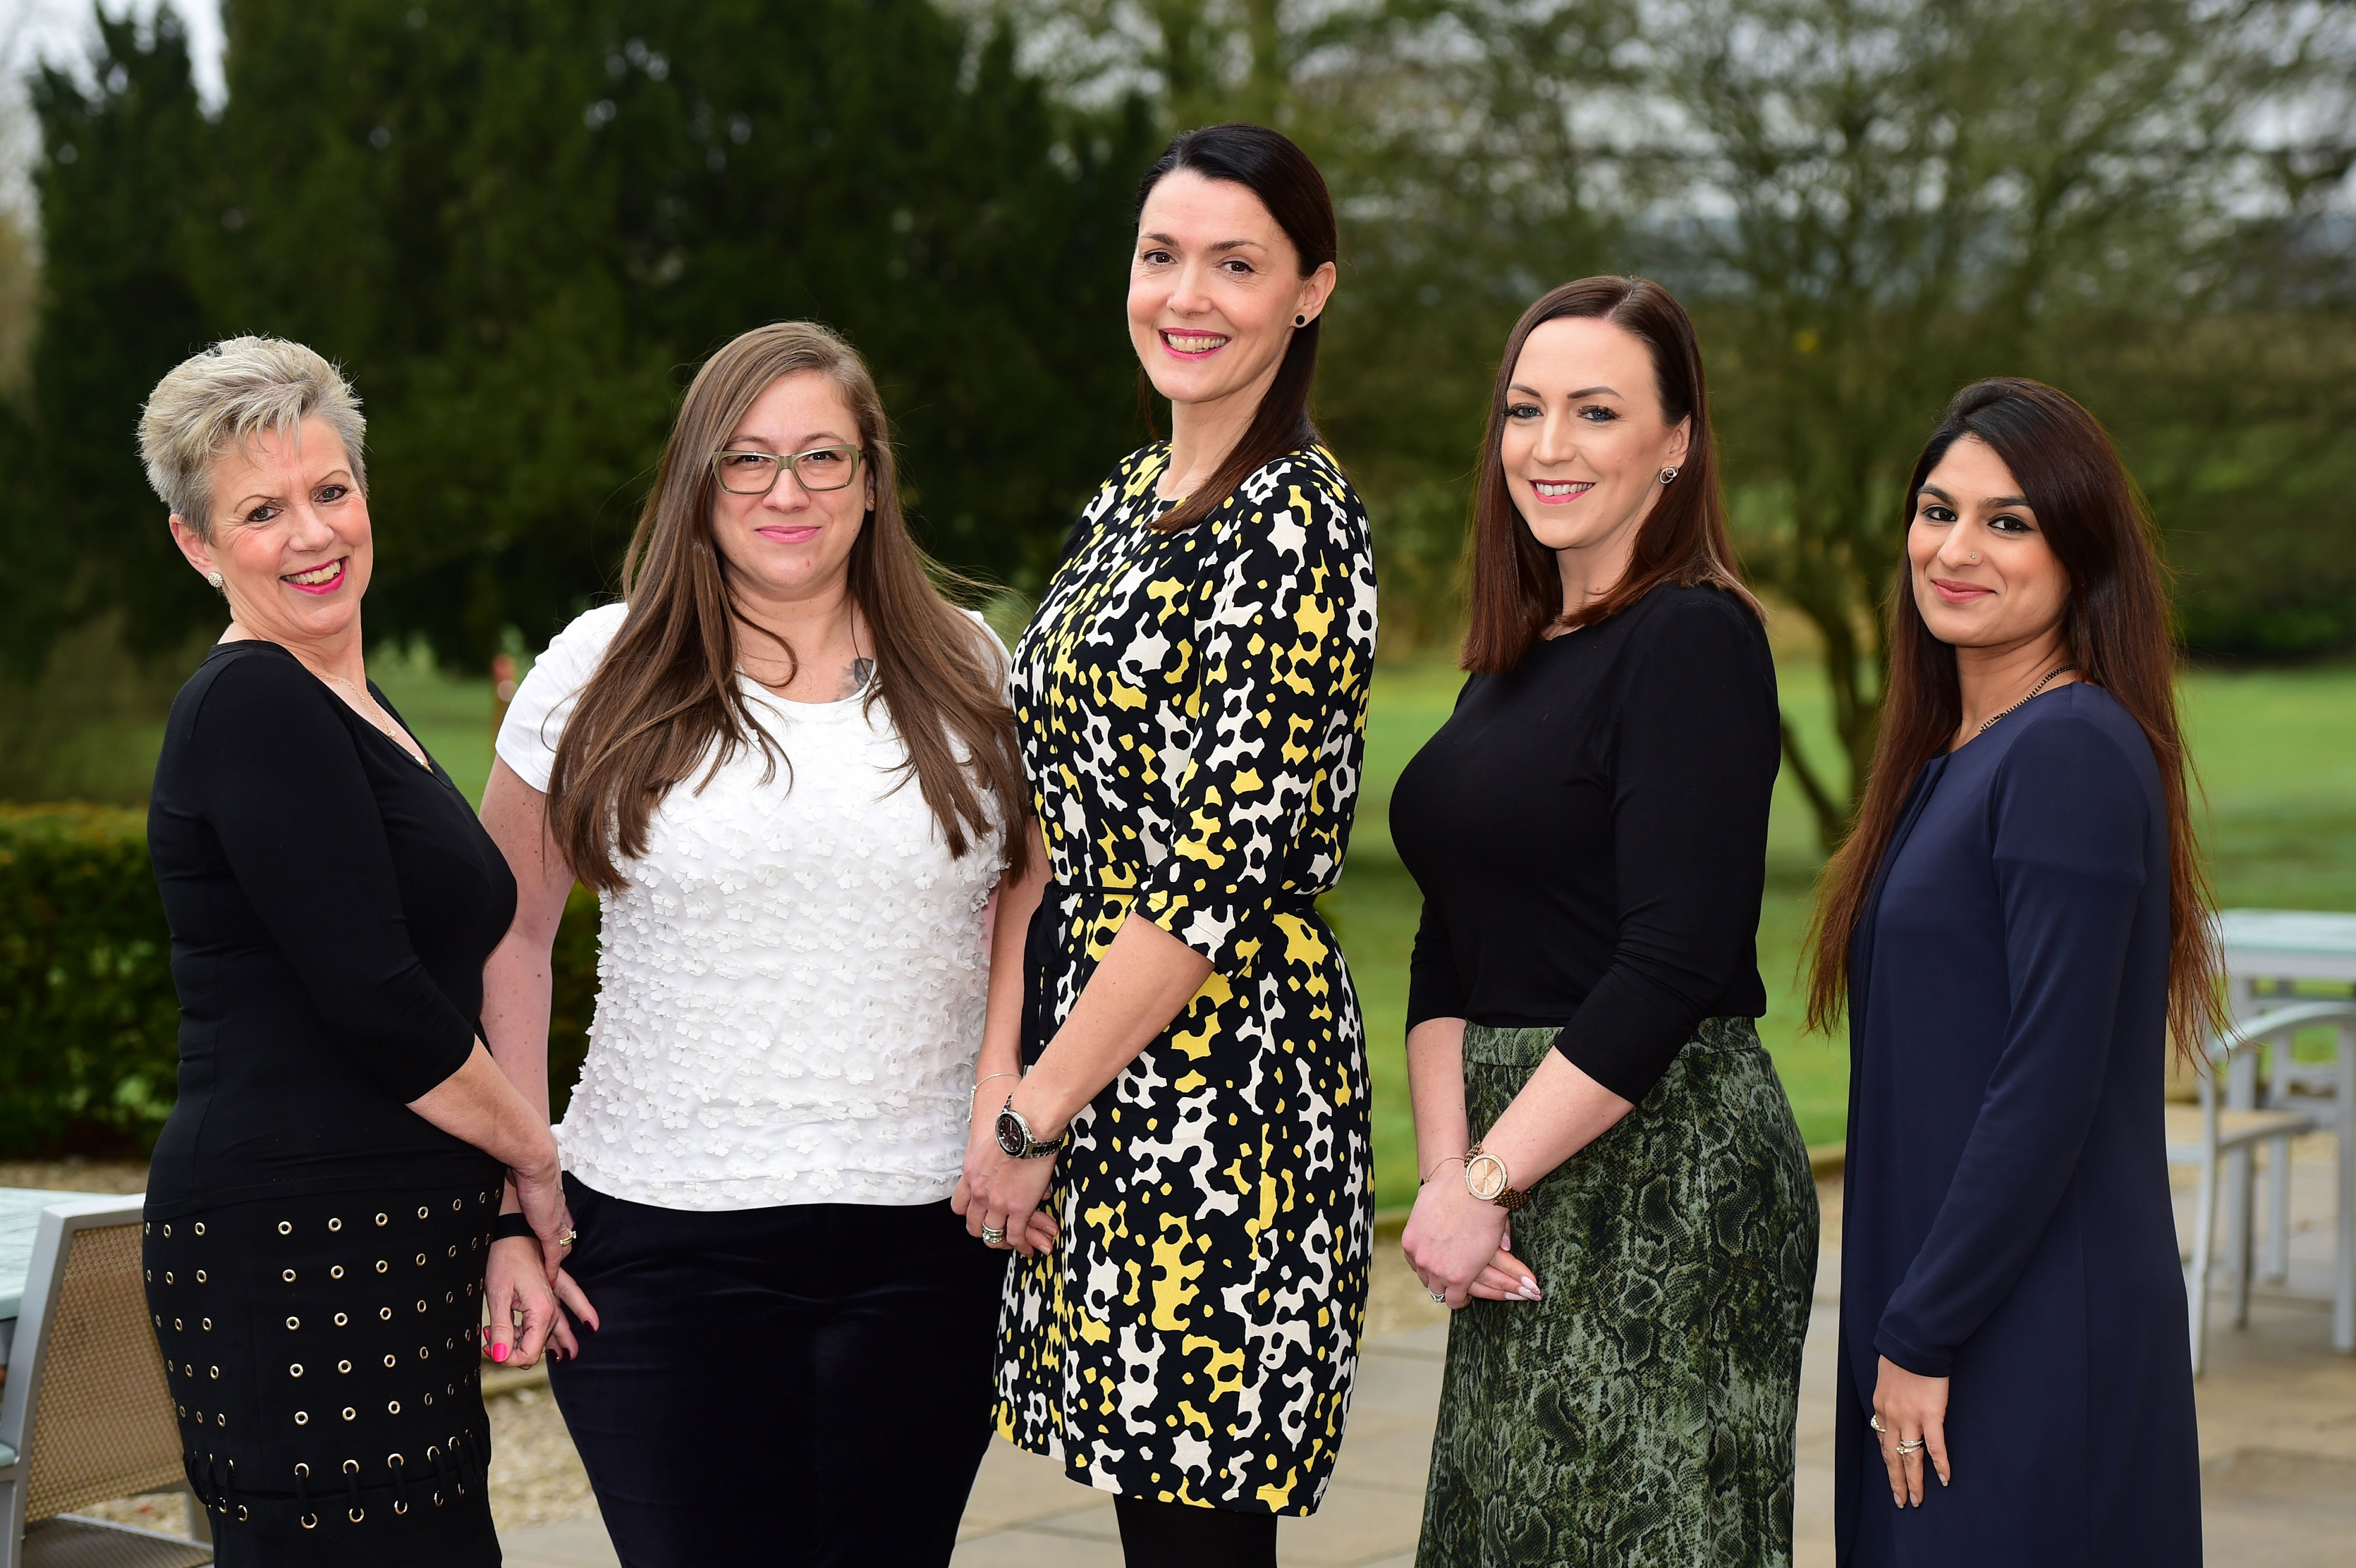 Employees at award-winning homebuilder leading the way for women in construction